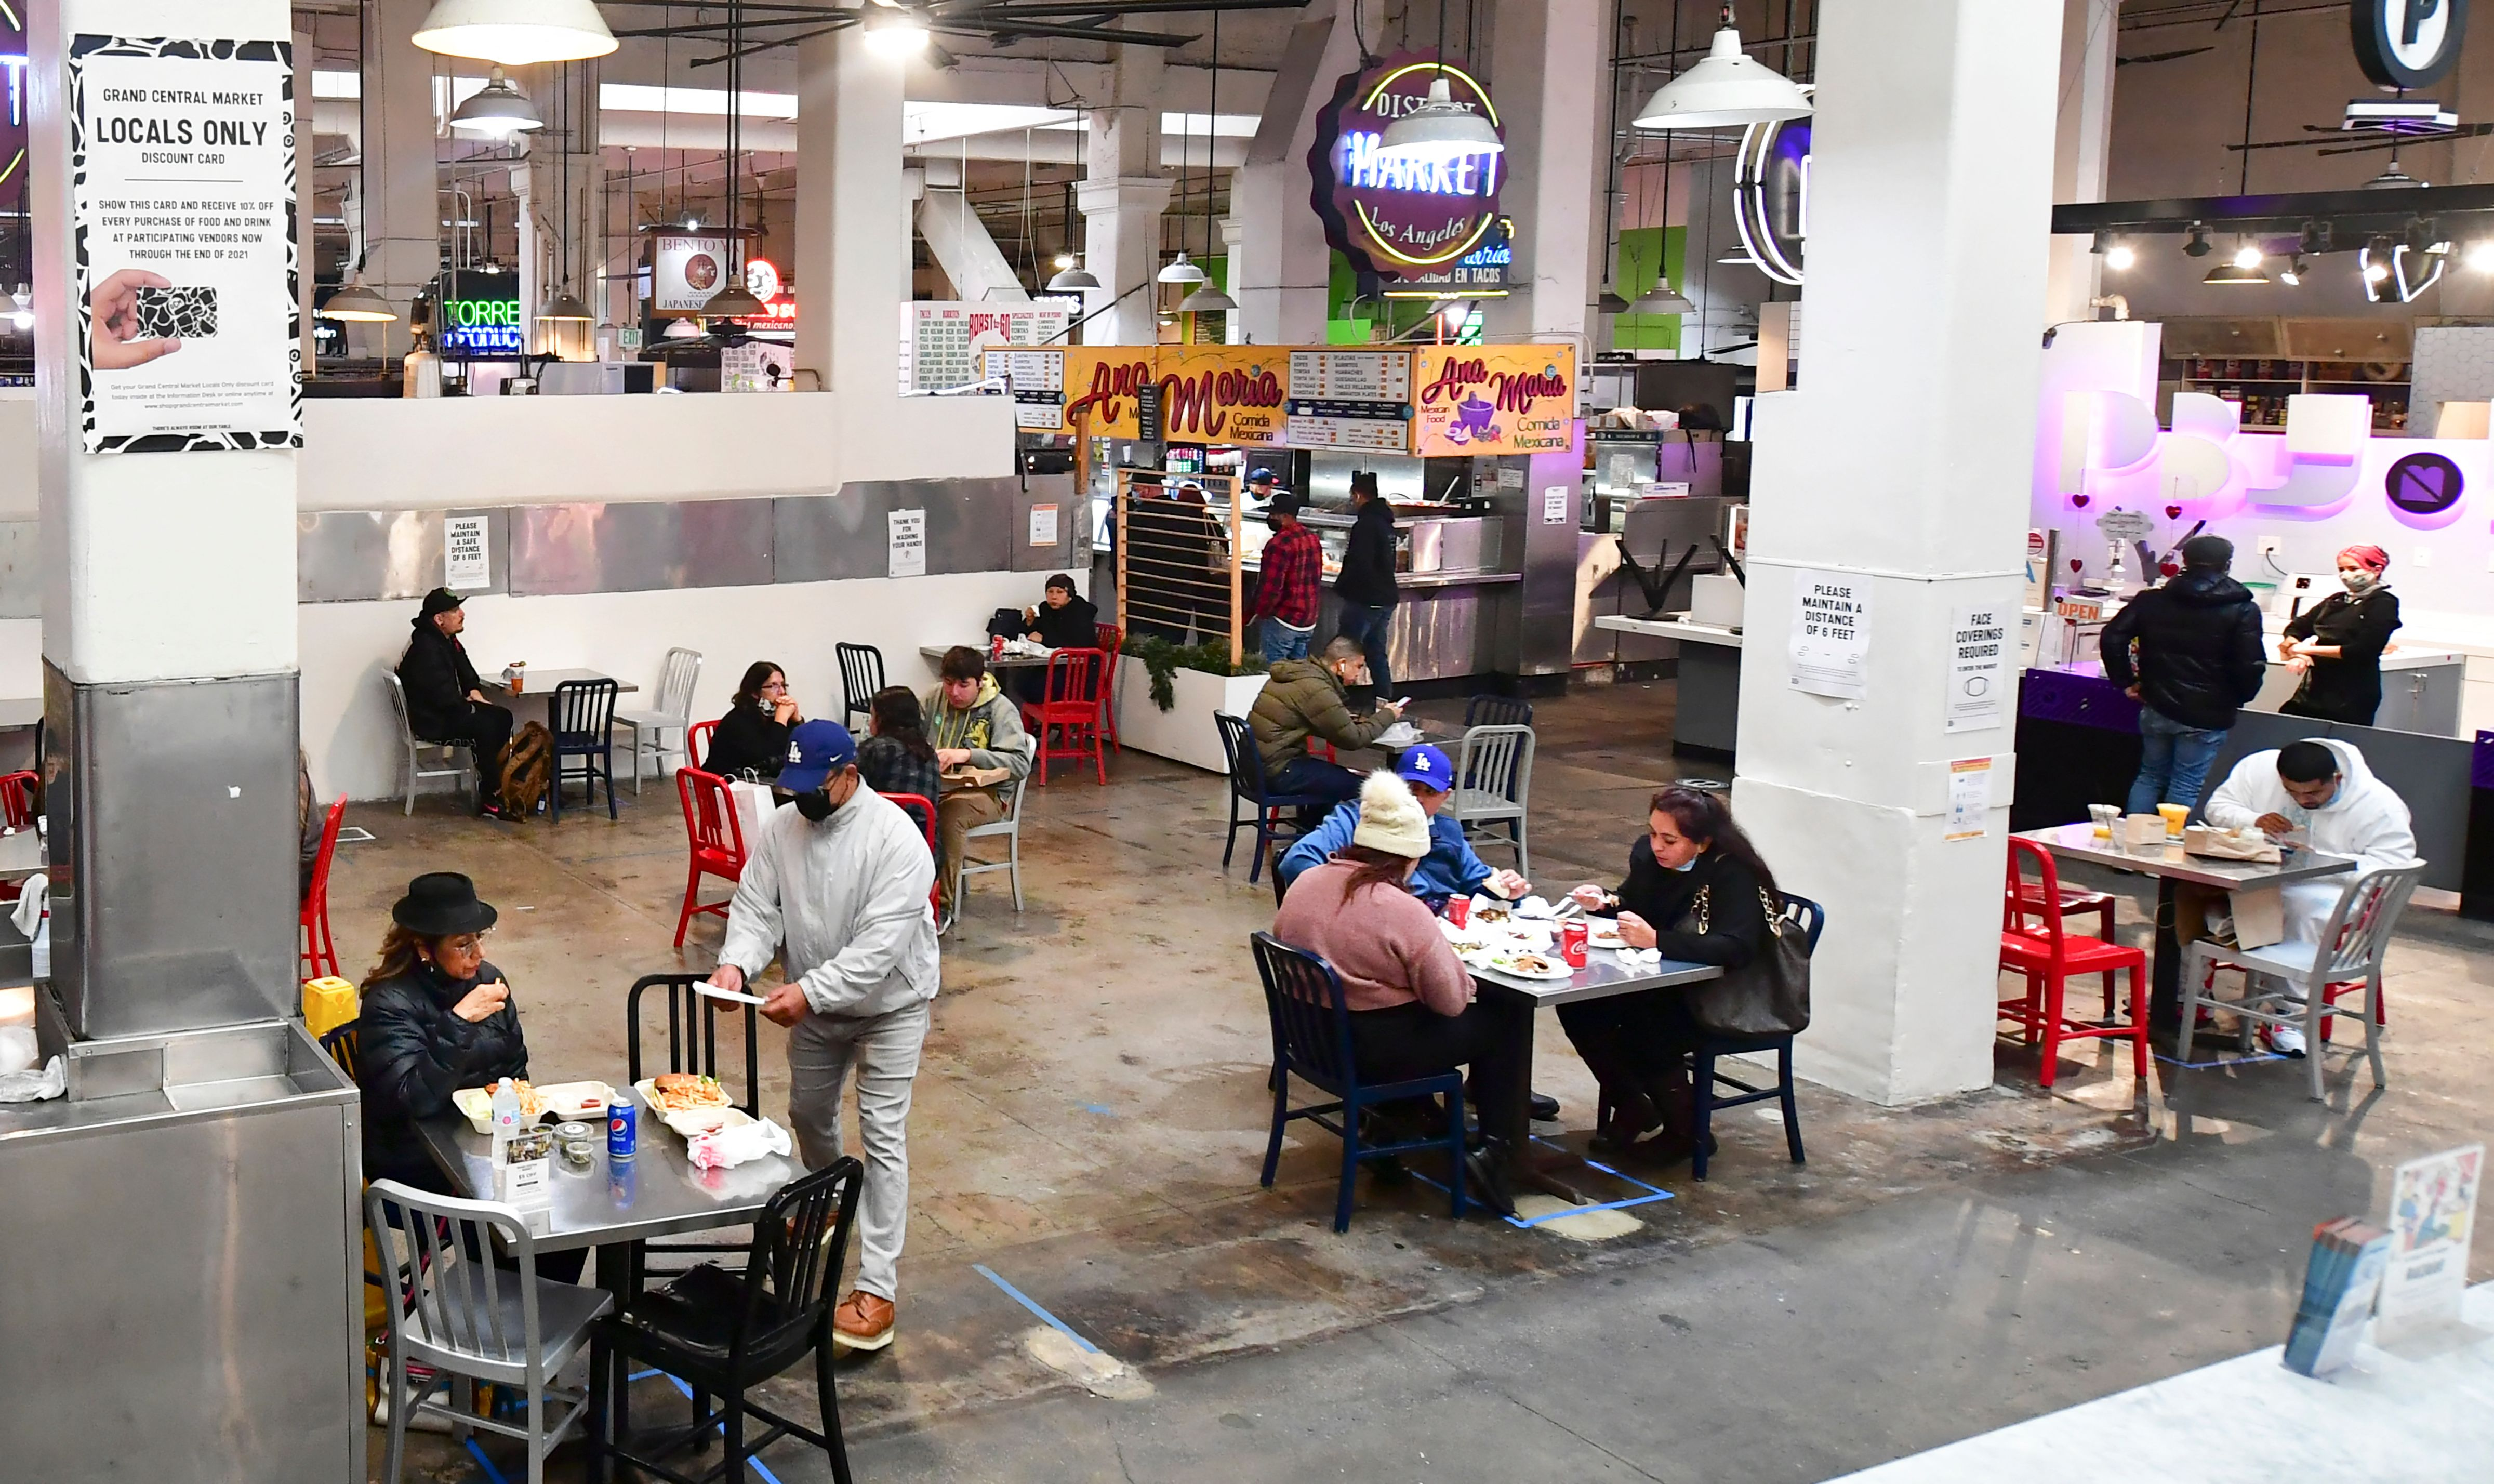 People enjoy lunch at Grand Central Market as indoor dining reopens in Los Angeles, on March 15, 2021.